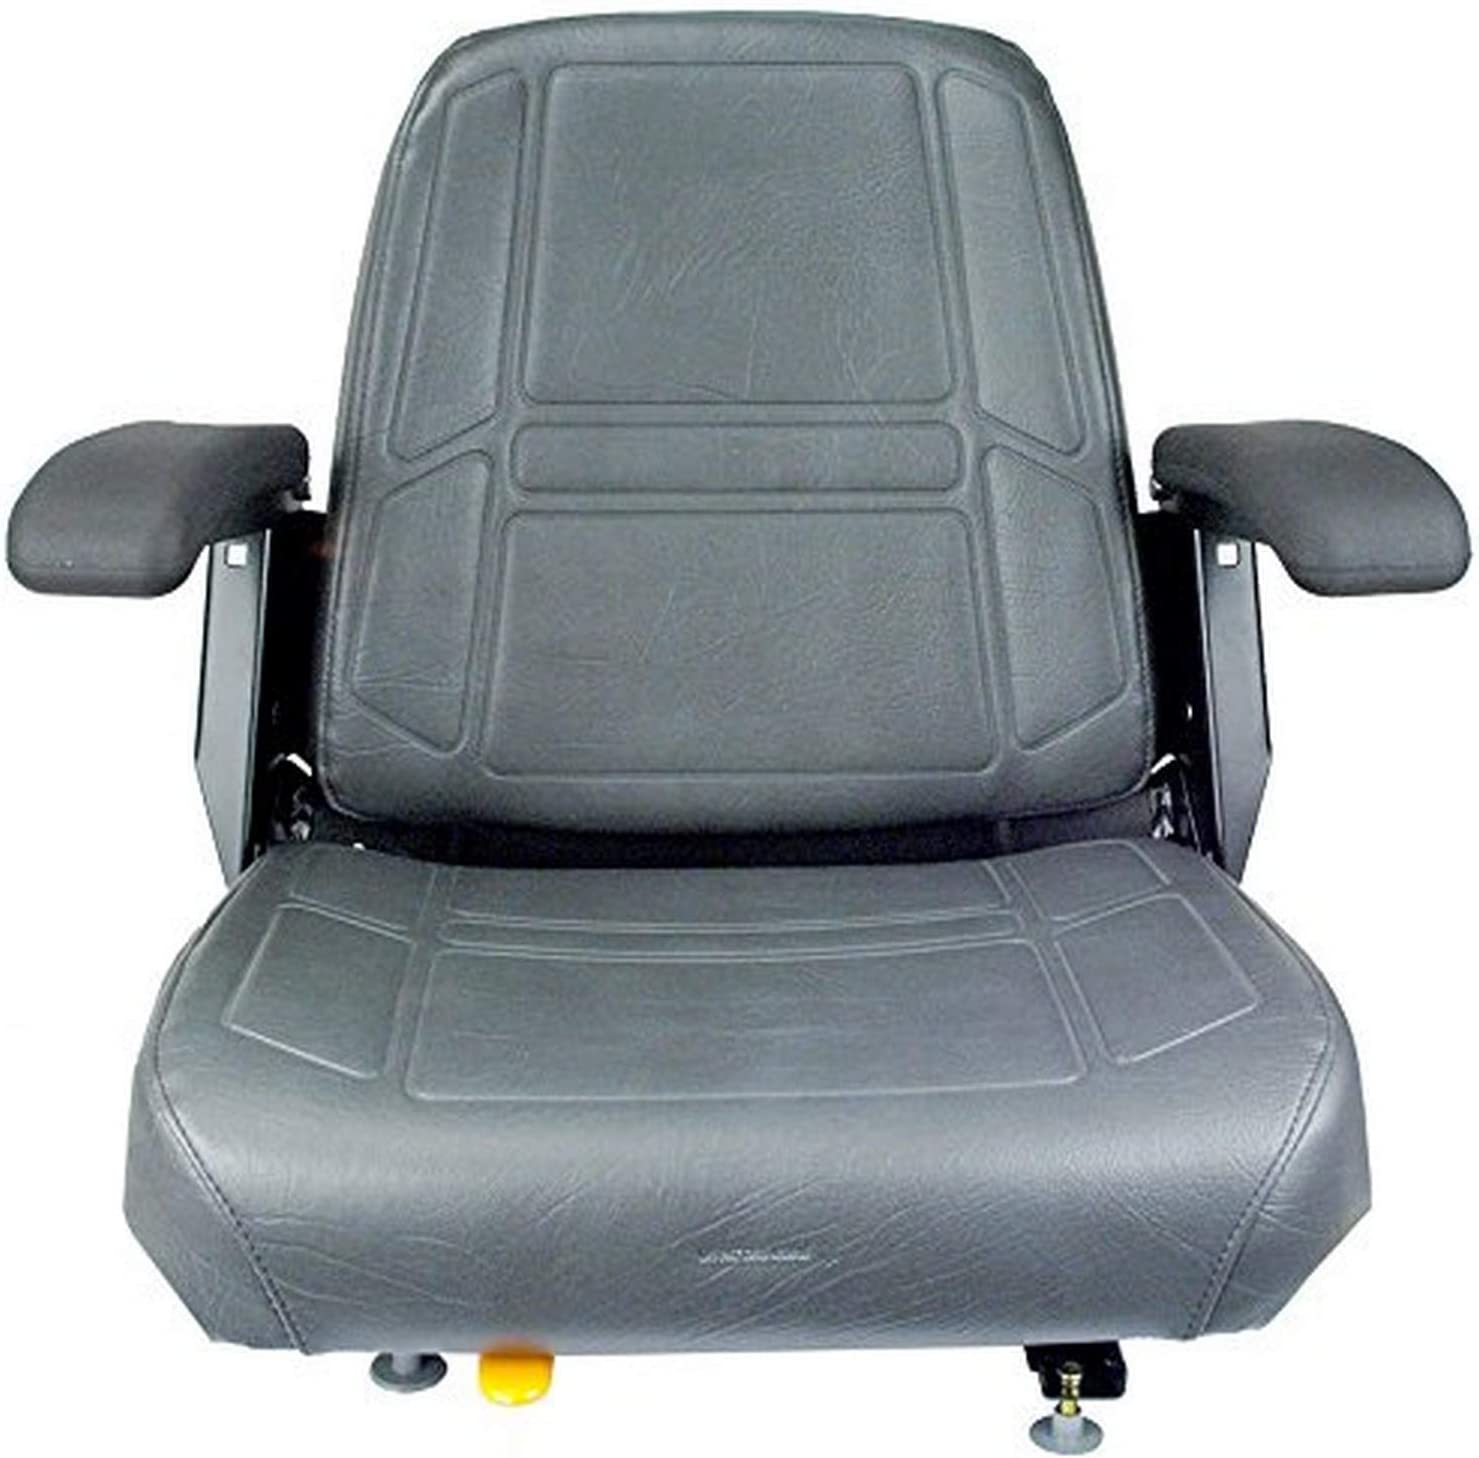 Rotary 14845 Comfort Ride Seat Armrests Mower online shopping Spring new work with